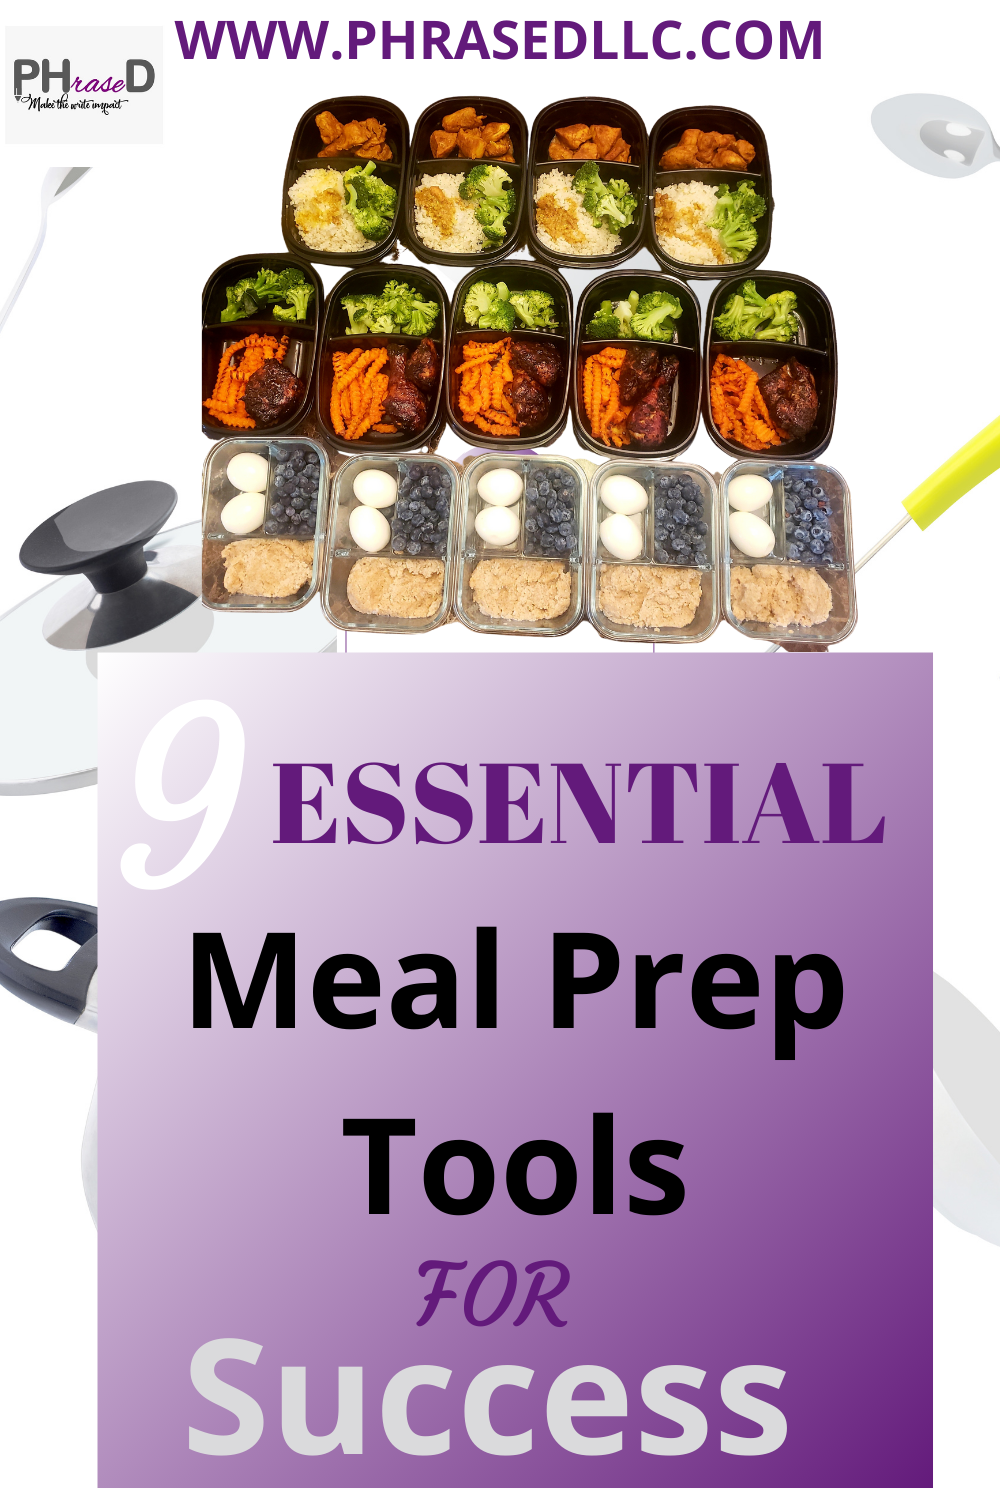 9 Essential Meal Prep Tools for Success that will help you to have a successful meal prep lifestyle.